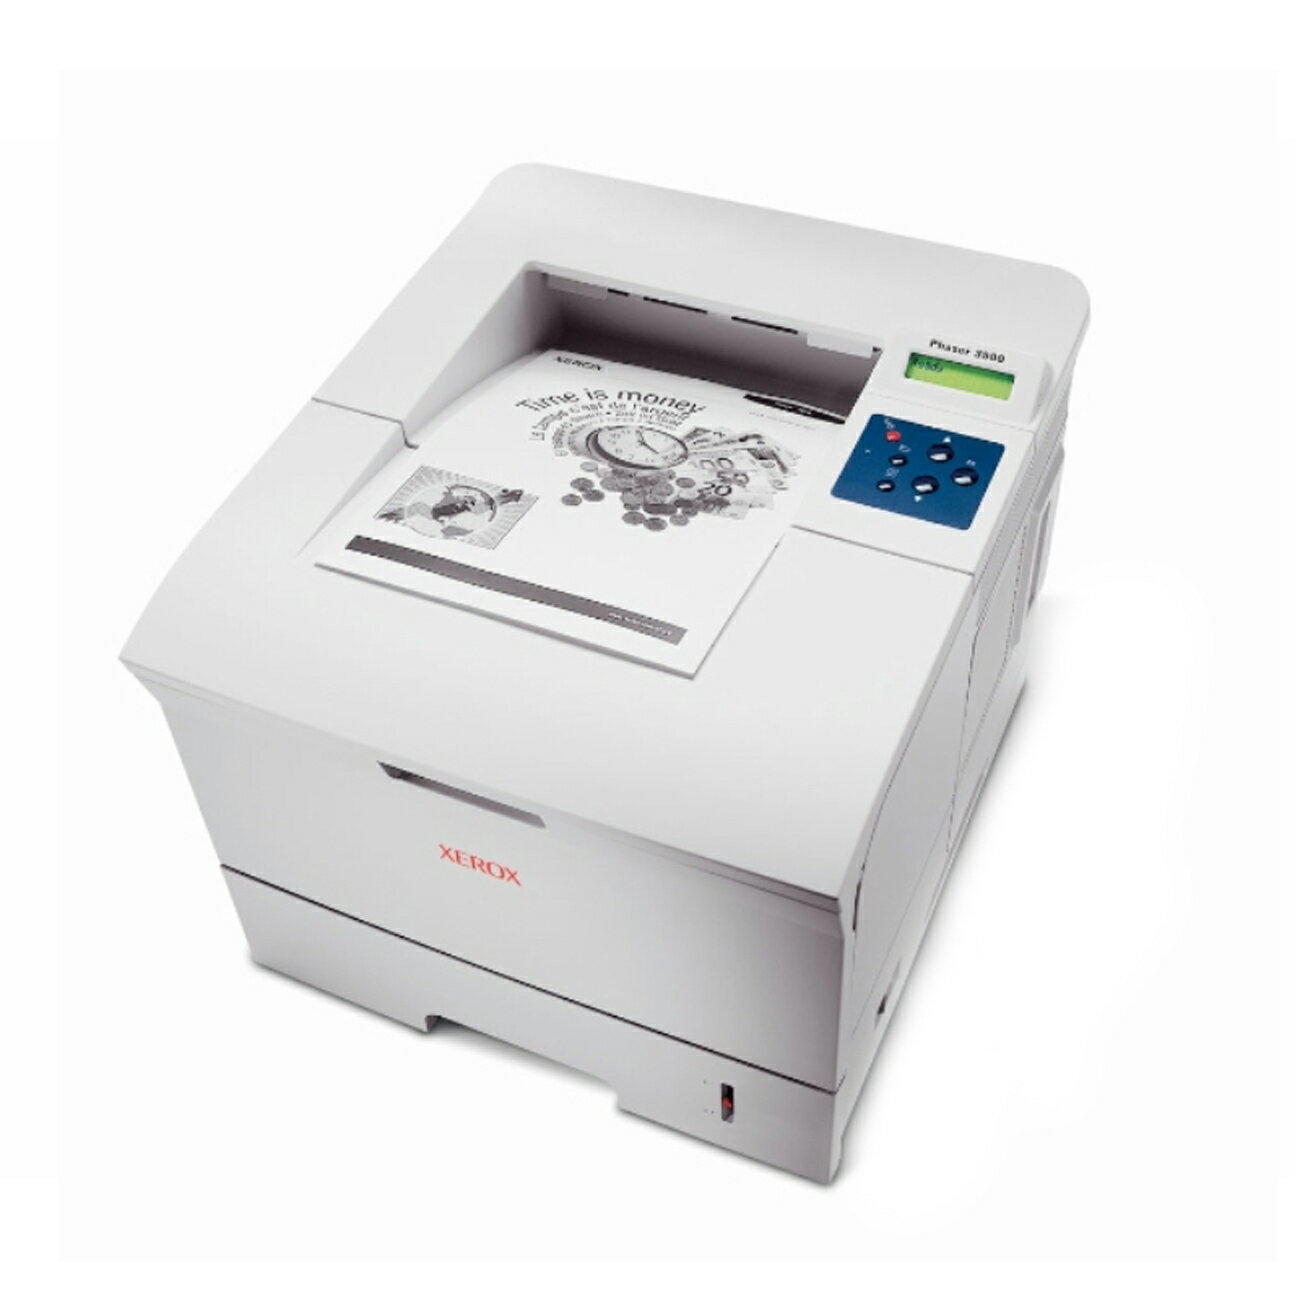 Xerox Phaser 3500N Laser Printer - Monochrome - 35 ppm Mono - Parallel, USB - Fast Ethernet - PC, Mac 0